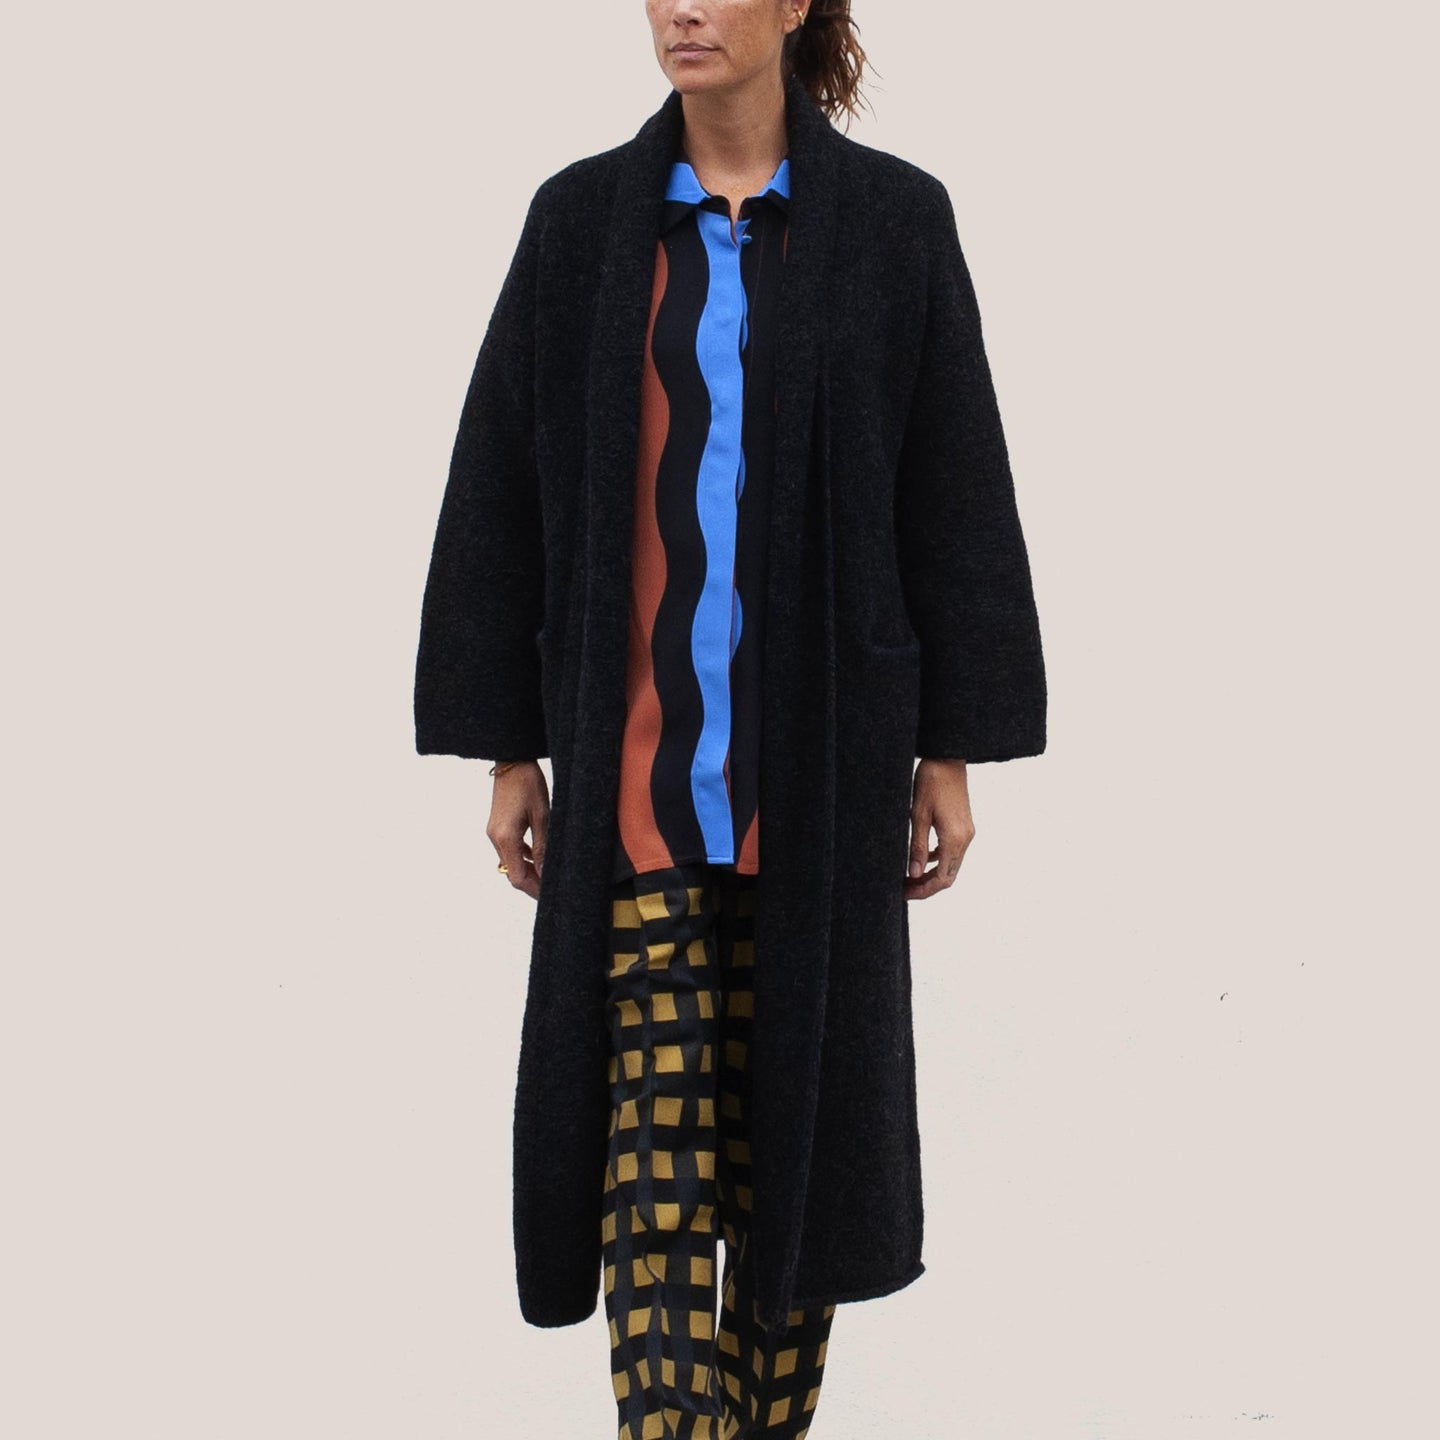 Lauren Manoogian - Long Shawl Cardigan in Black Melange, front view, available at LCD.